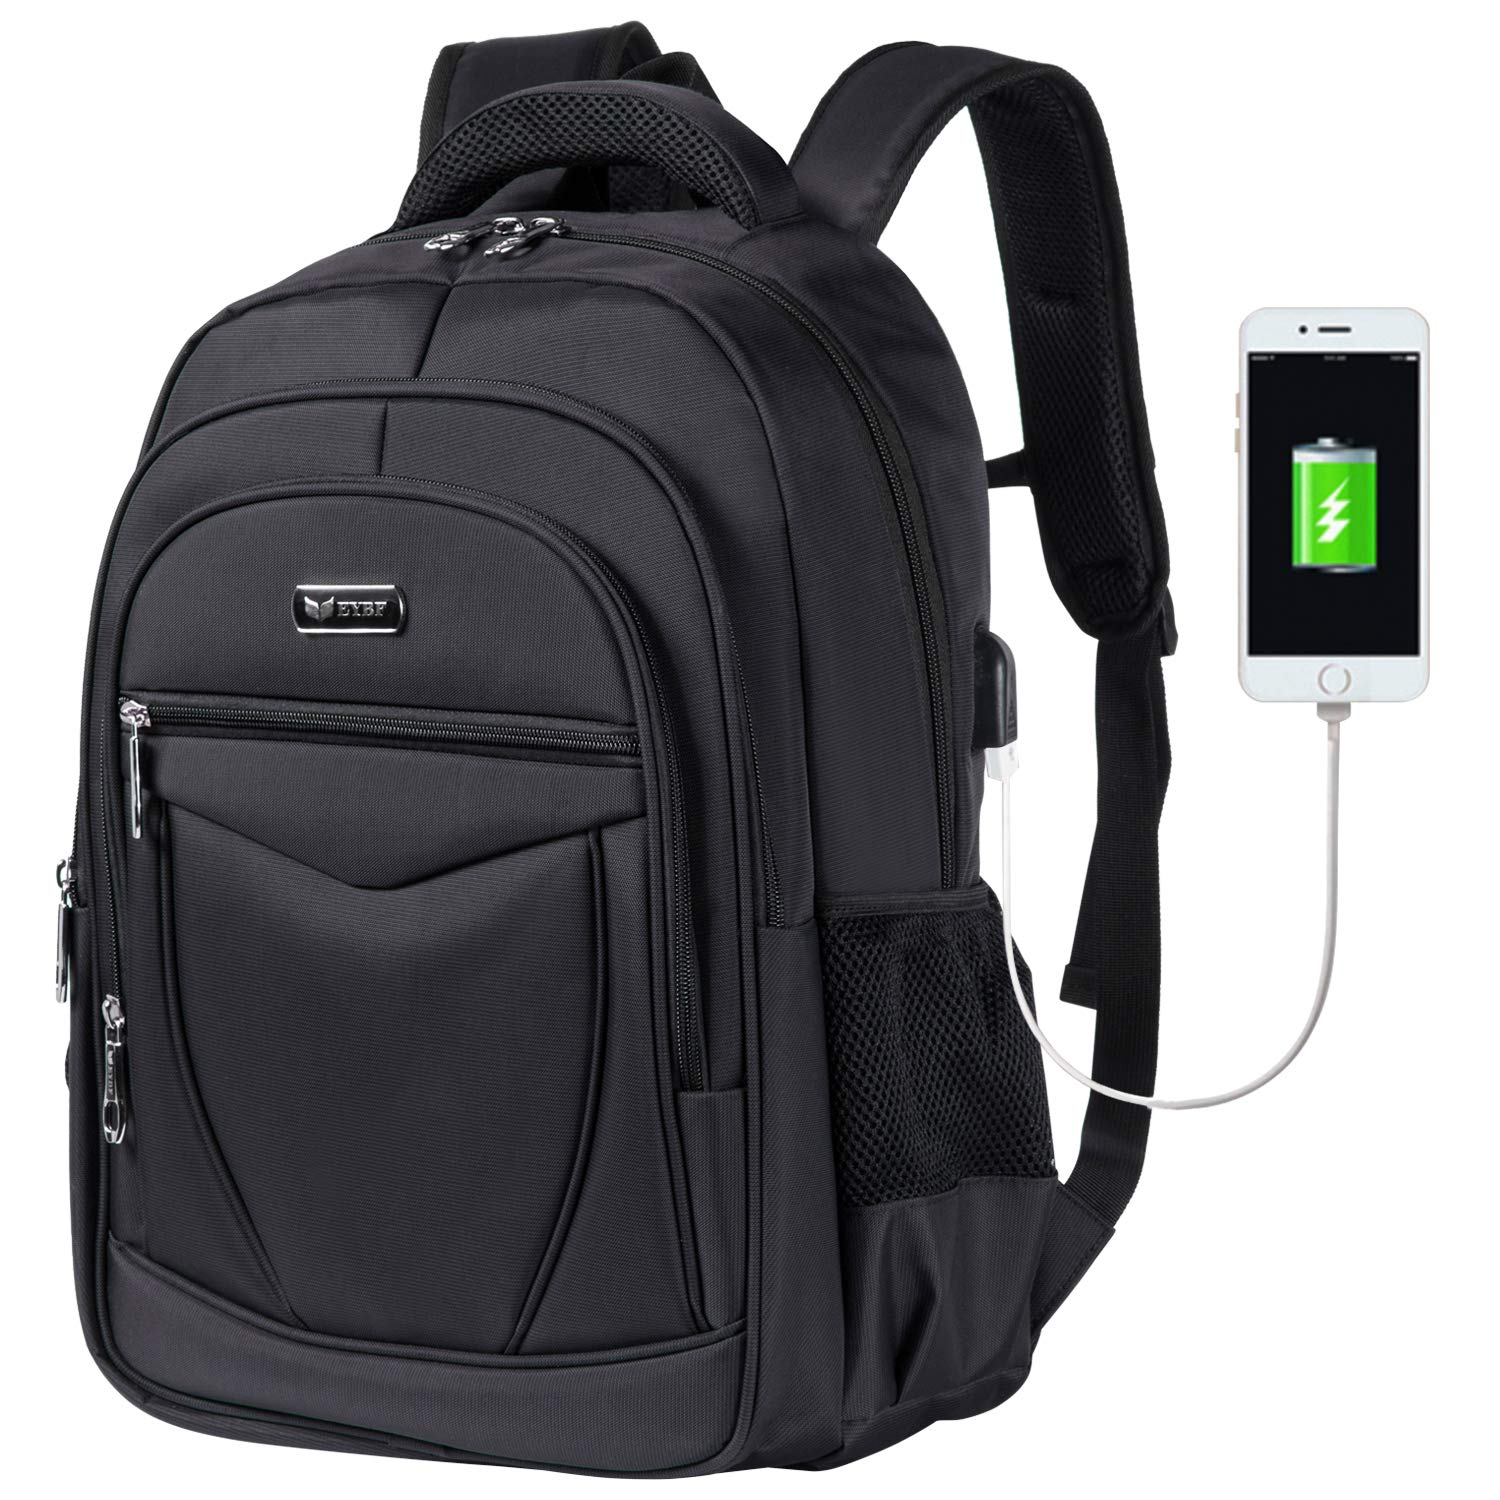 EYBF Laptop Backpack,Business Anti Theft Slim Durable Laptops Backpack with USB Charging Port,Water Resistant College School Computer Bag for Women & Men Fits 15.6 inch Laptop and Notebook - Black